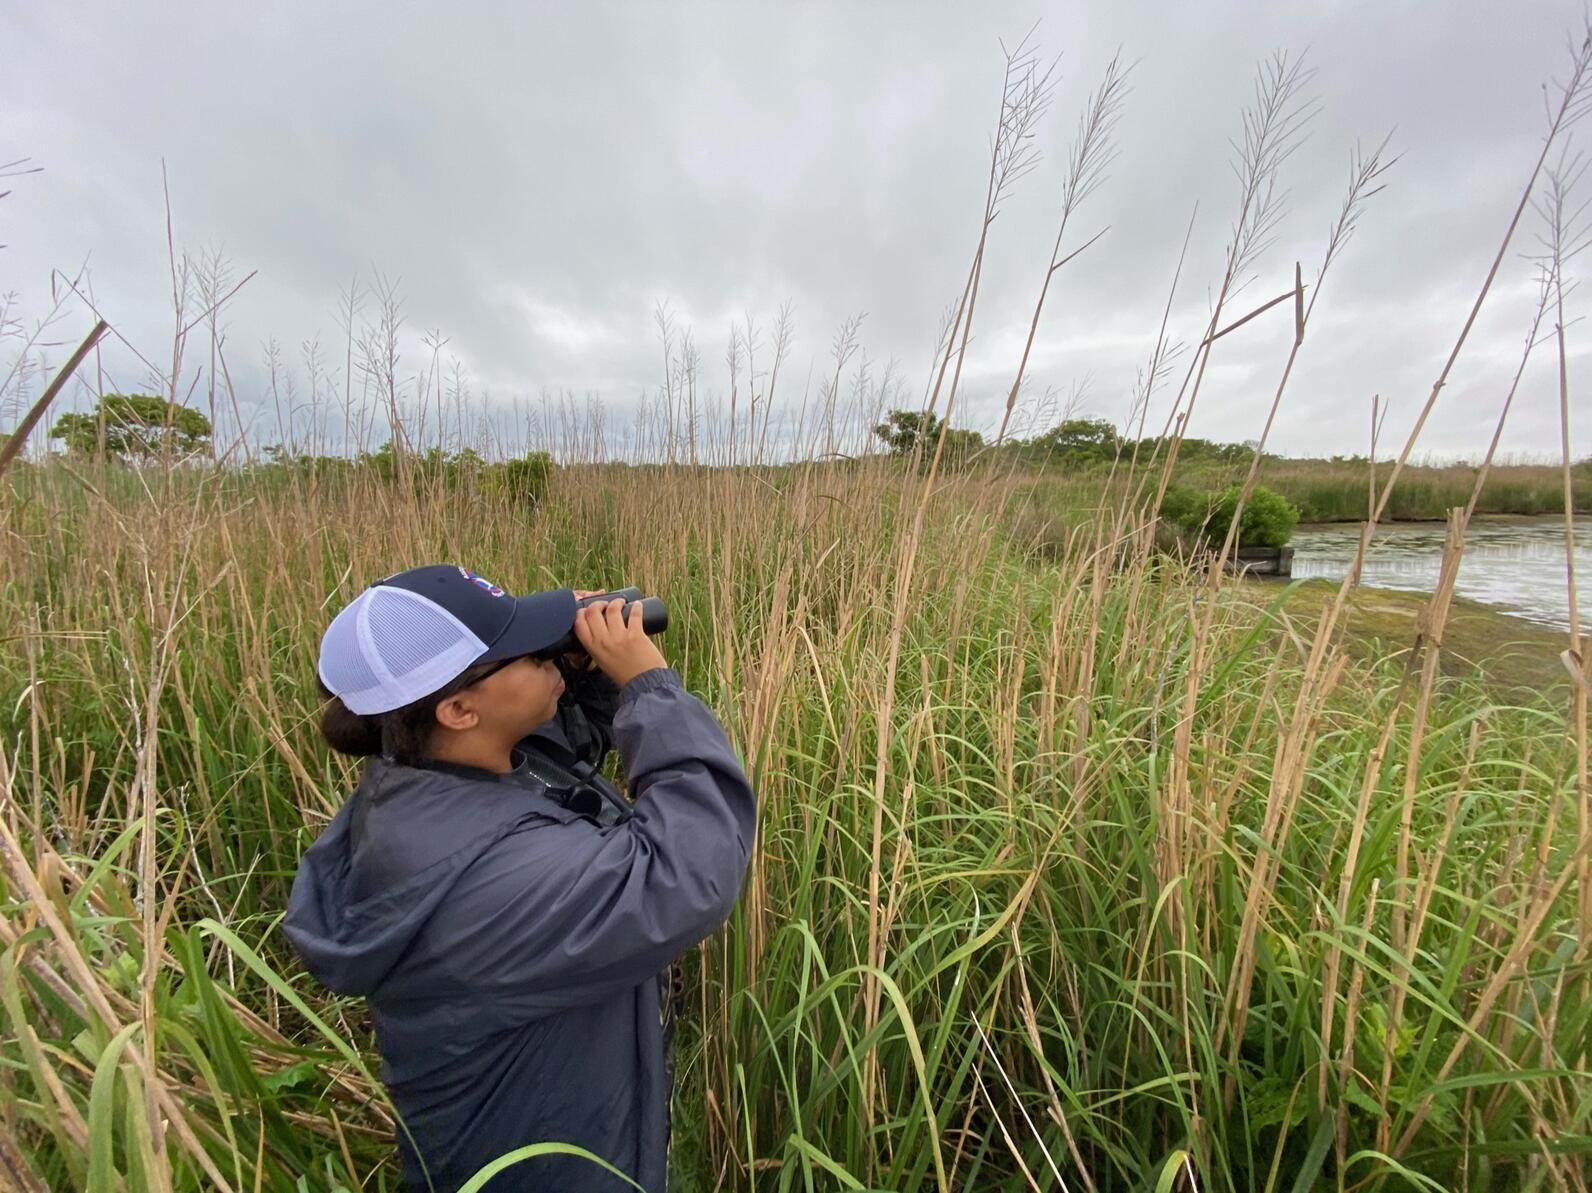 While secretive marsh birds are hard to see, we do try to spot them.